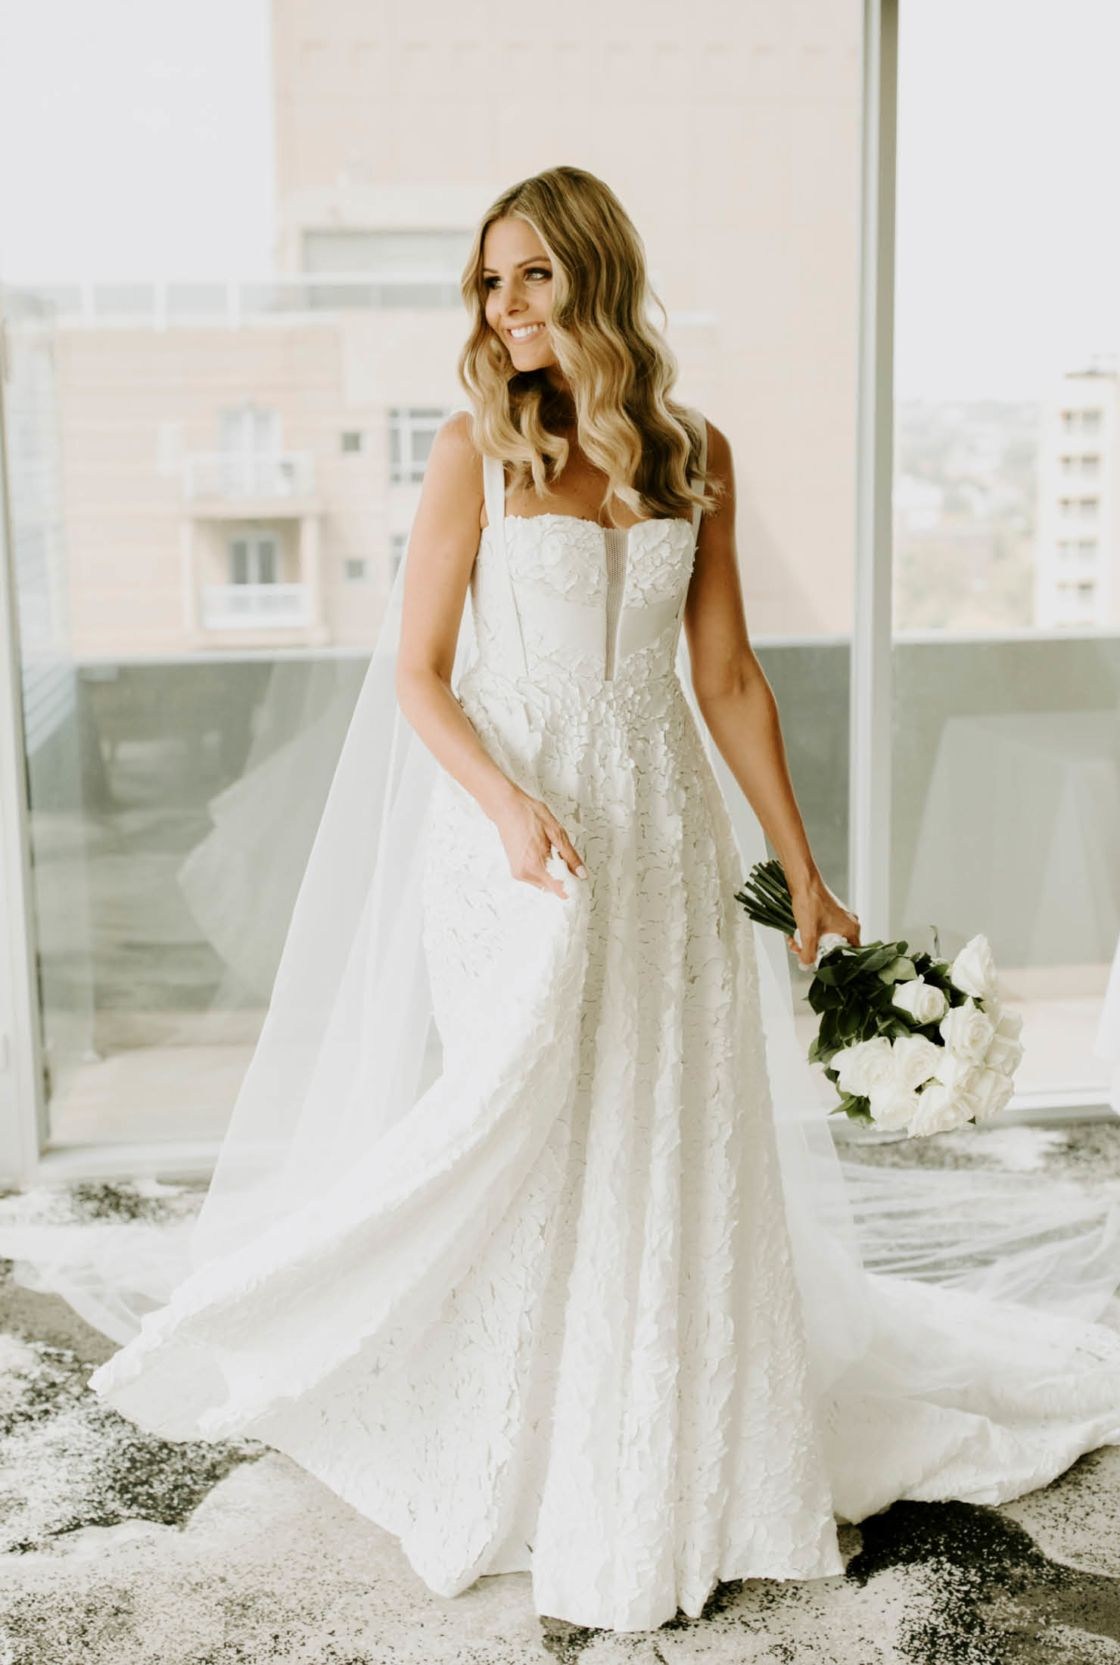 Best Of 2020 Bridal Gowns Hello May In 2021 Bridal Gowns Wedding Dress Couture Melbourne Wedding [ 1665 x 1120 Pixel ]